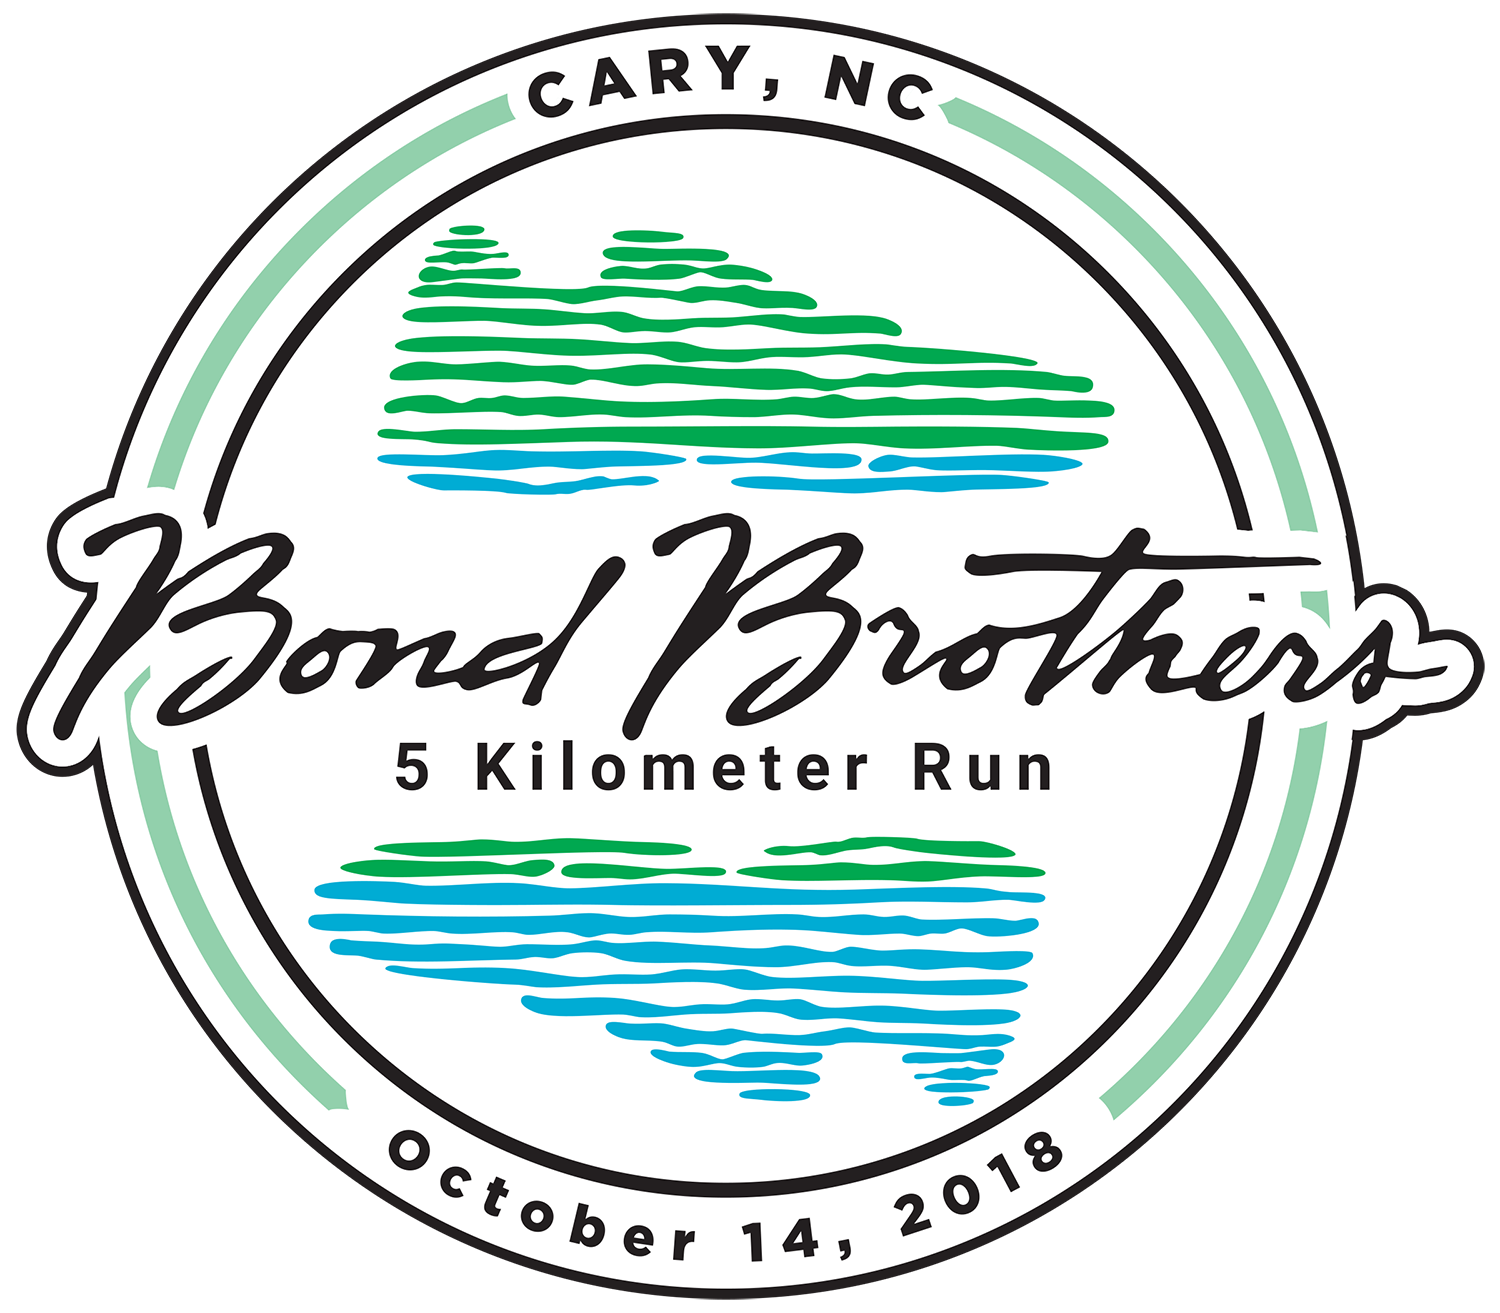 Race T Shirt Sponsor SOLD OUT Bond Brothers 5K